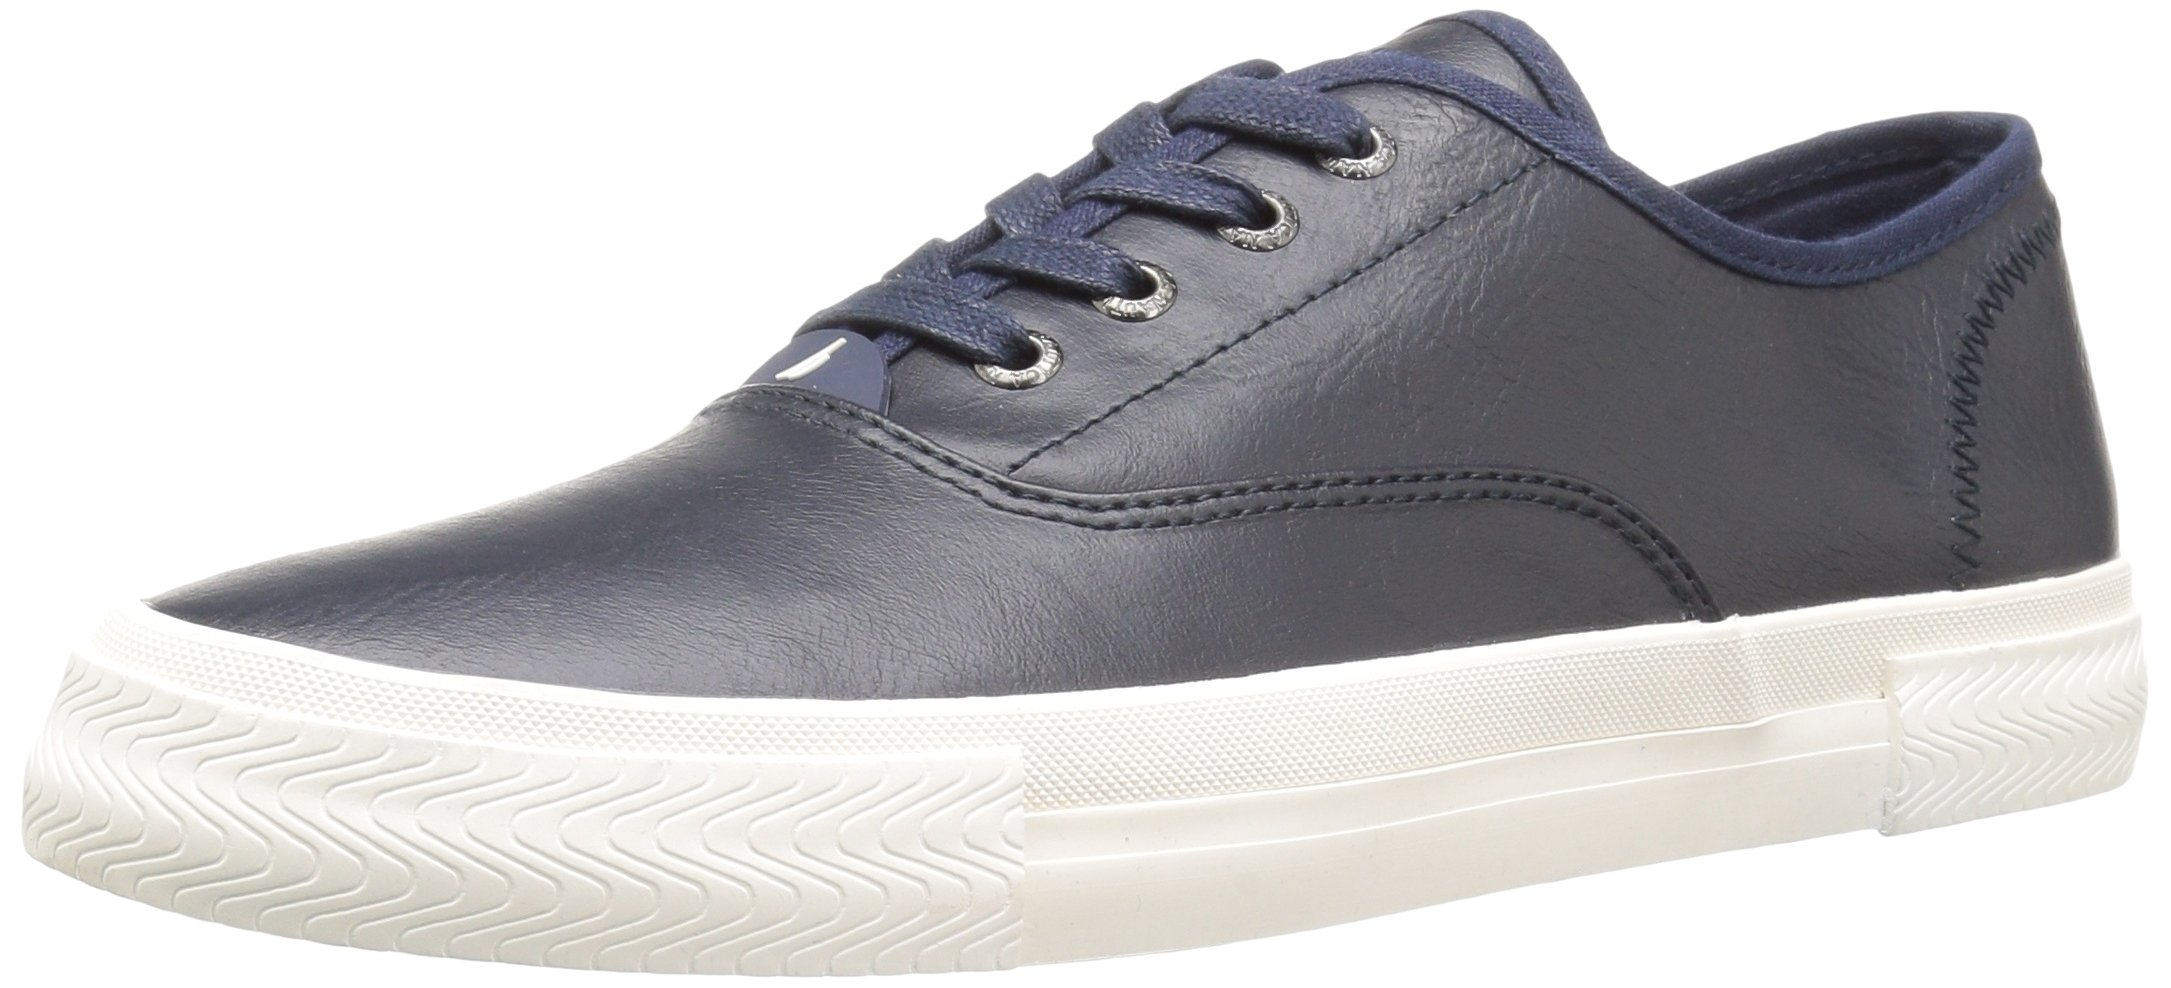 Nautica Men's Deckloom Sneaker, Peacoat Smooth, 10 Medium US